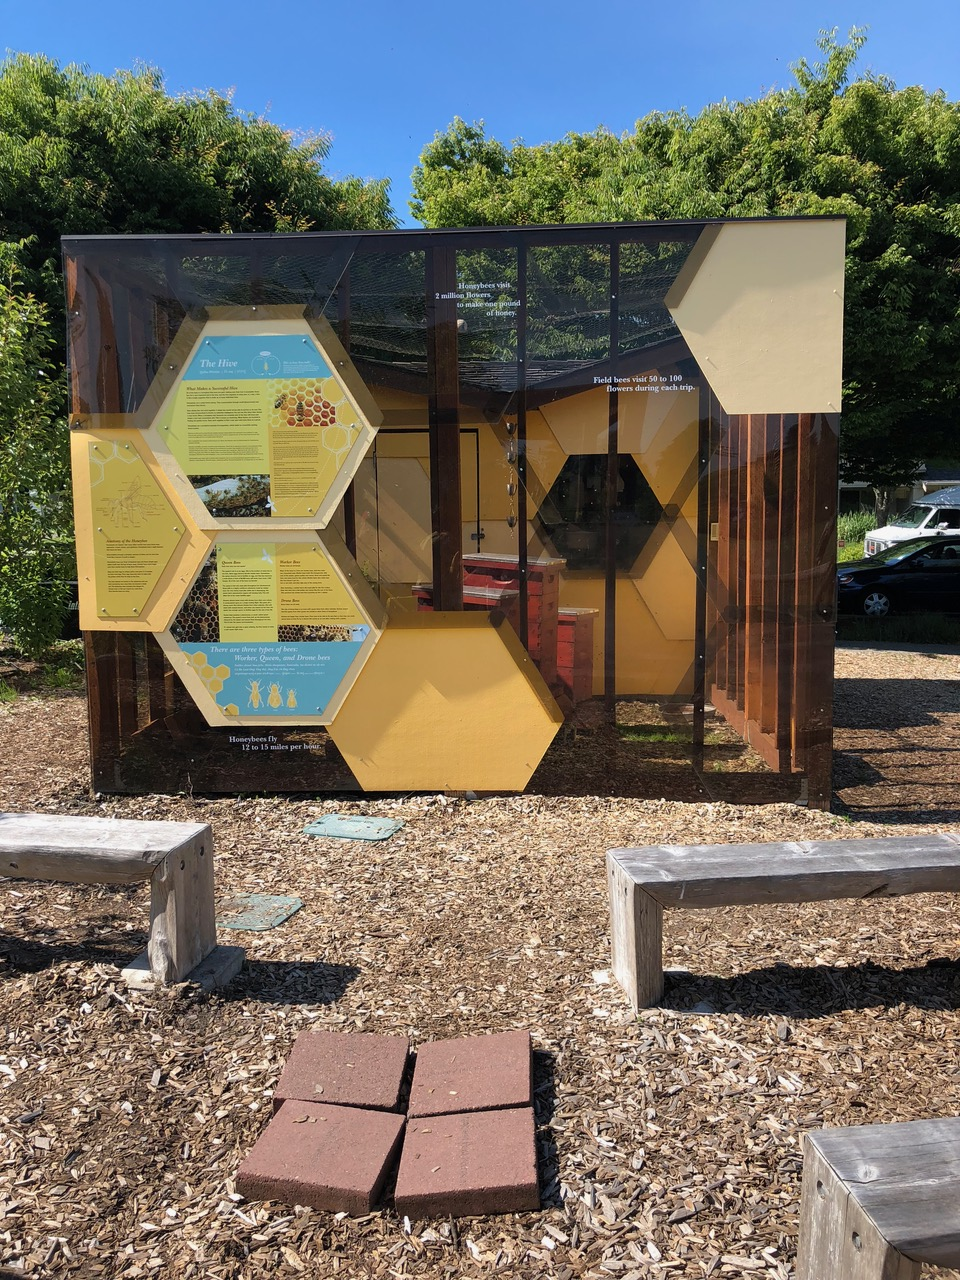 West Seattle Garden Tour featured eleven homes and one for bees